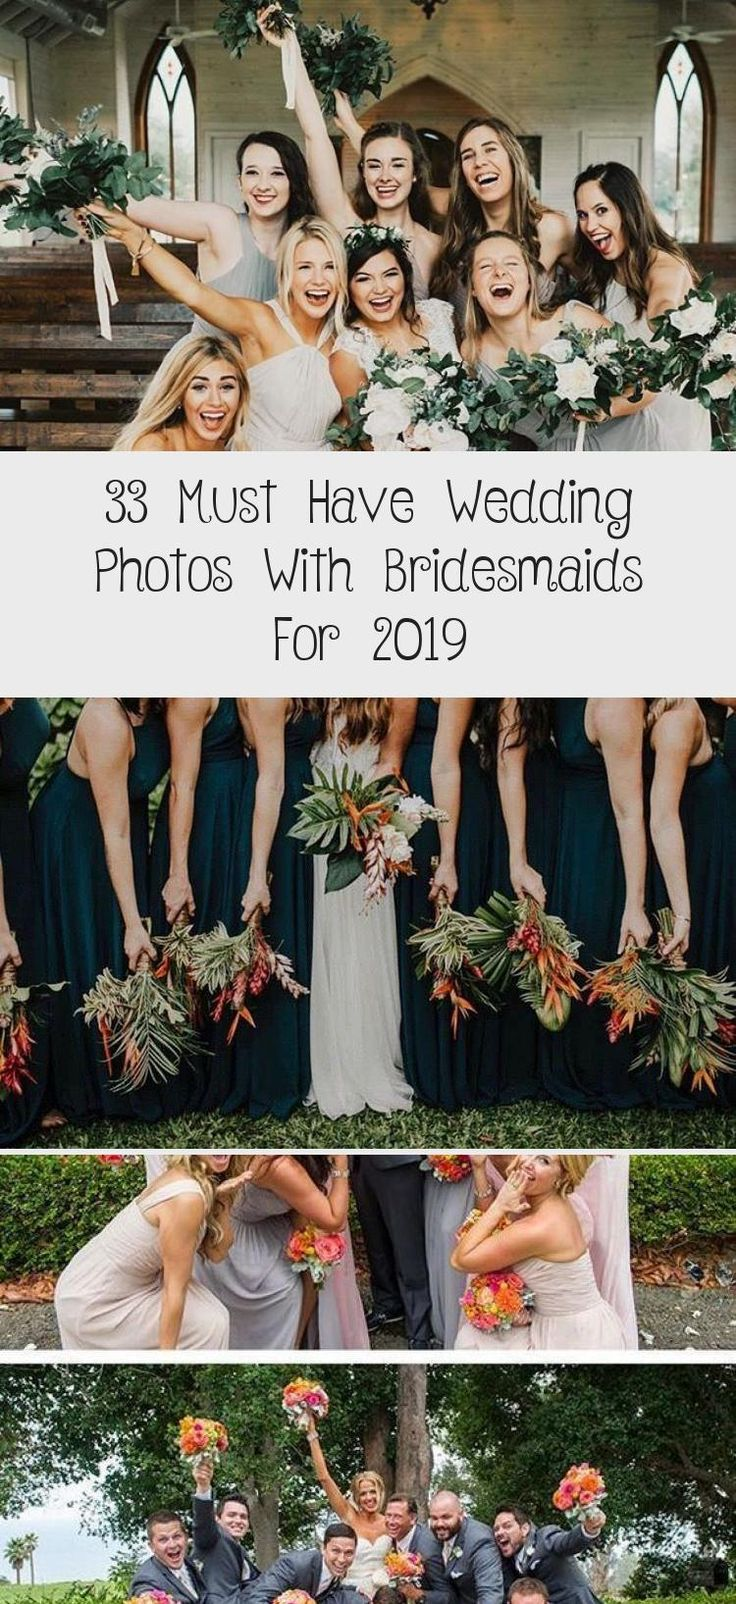 33 Must Have Wedding Photos with Bridesmaids for 2019 #DavidsBridalBridesmaidDresses #RedBridesmaidDresses #BridesmaidDressesFall #BridesmaidDressesSummer #BridesmaidDressesSpring